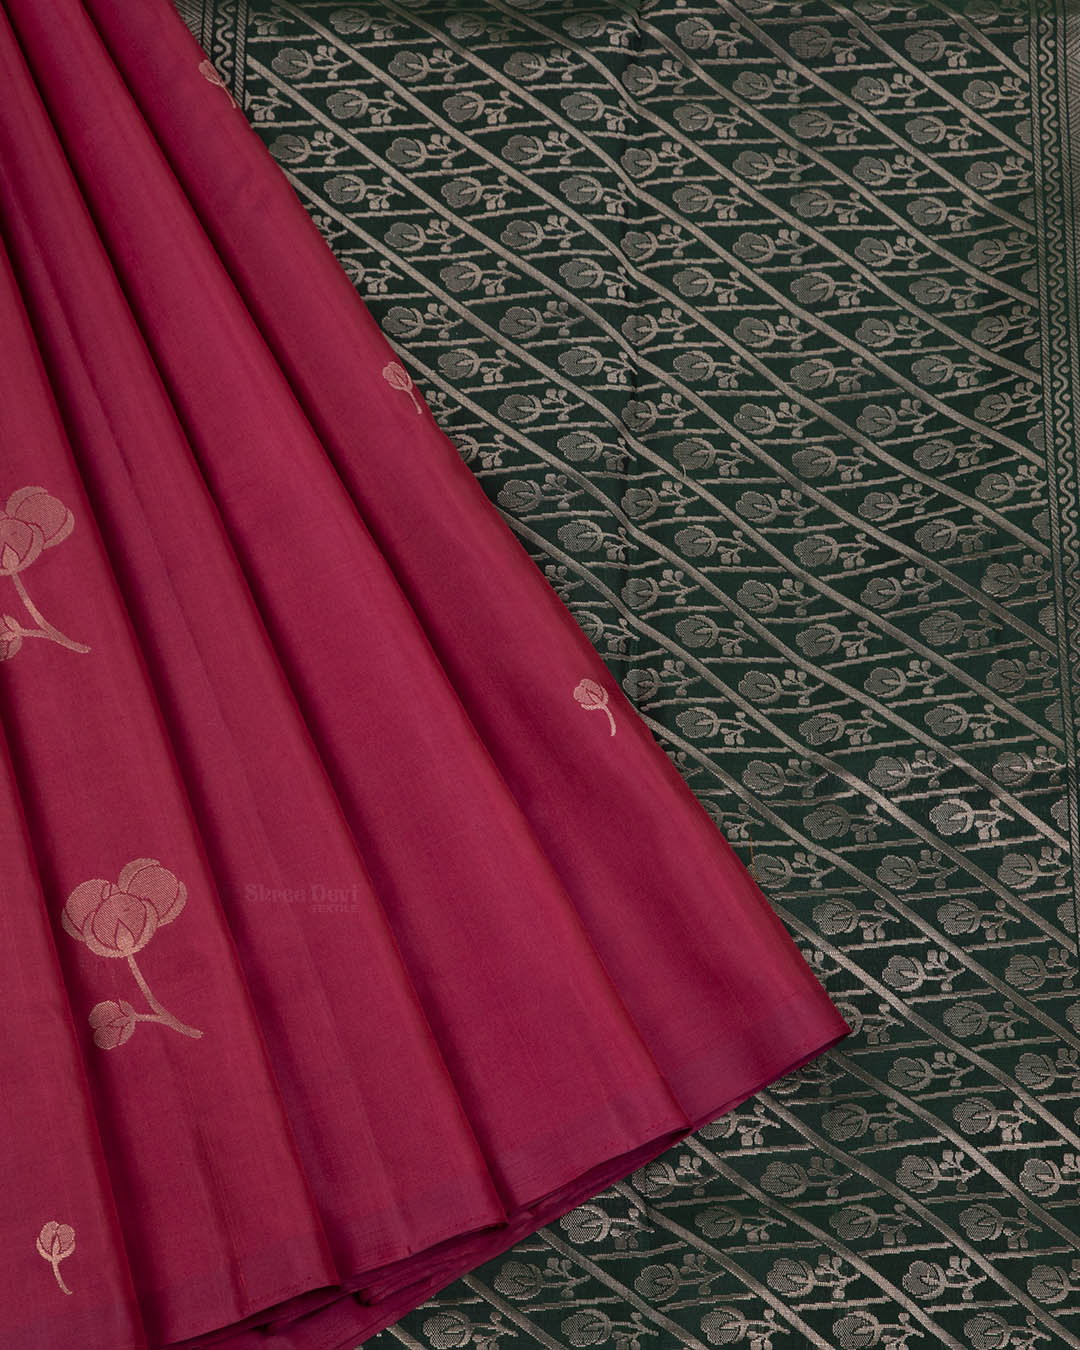 Dark Pink Elite Motif Kancheevarams Silk Saree with Floral Zari Motifs